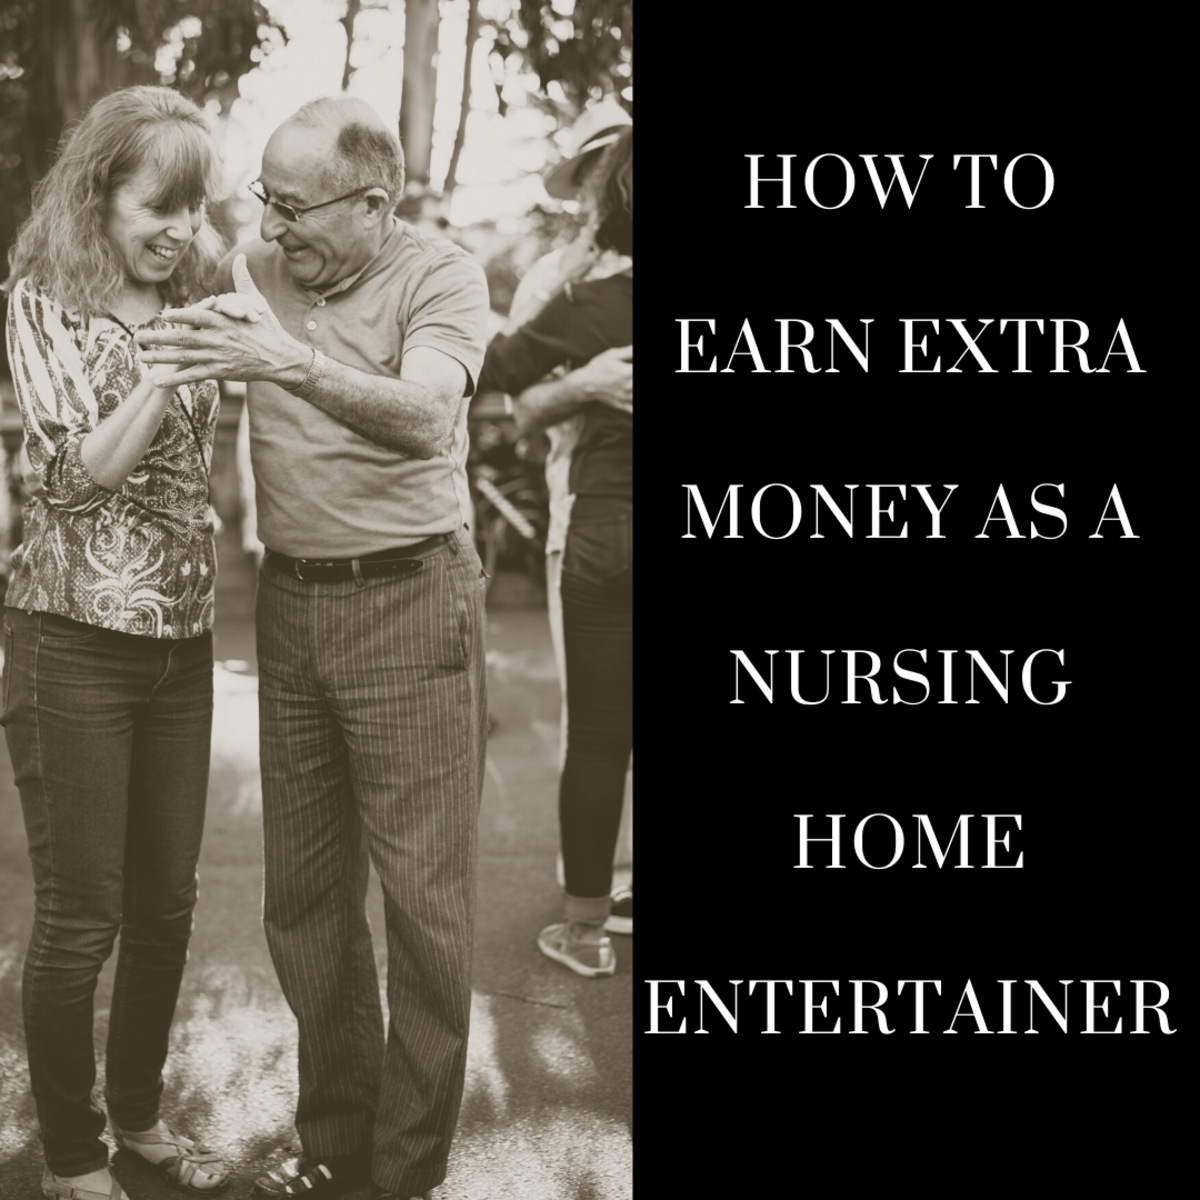 Providing nursing home entertainment can be a rewarding way to earn extra money.